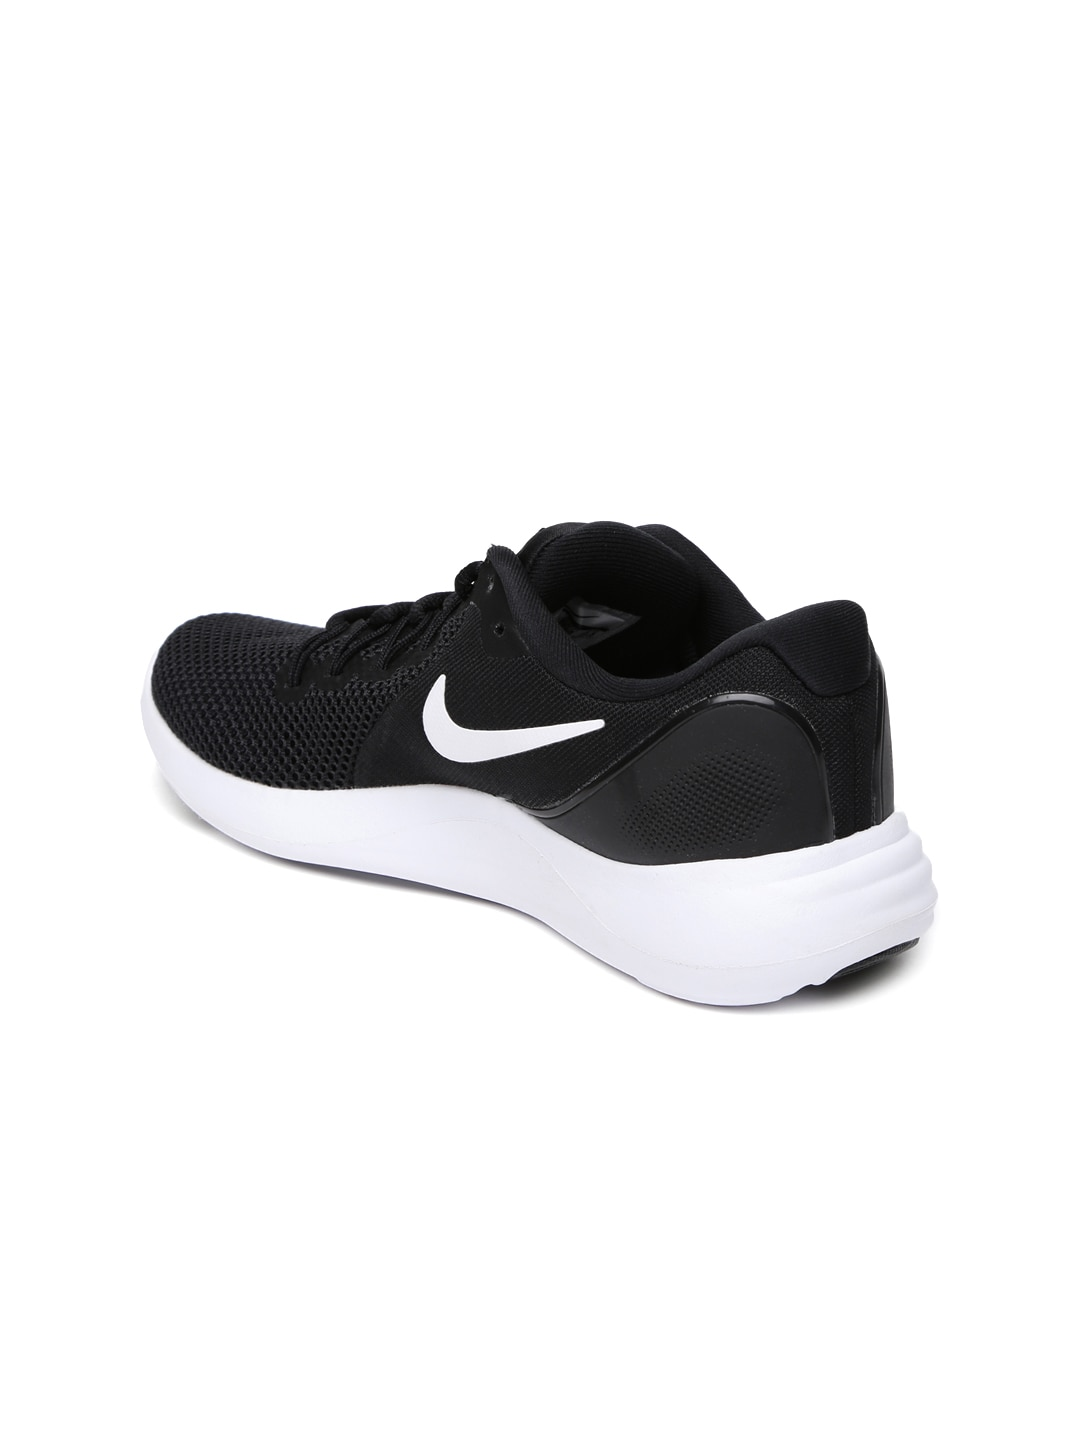 Nike Lunar Shoes - Buy Nike Lunar Shoes online in India ... womens ...